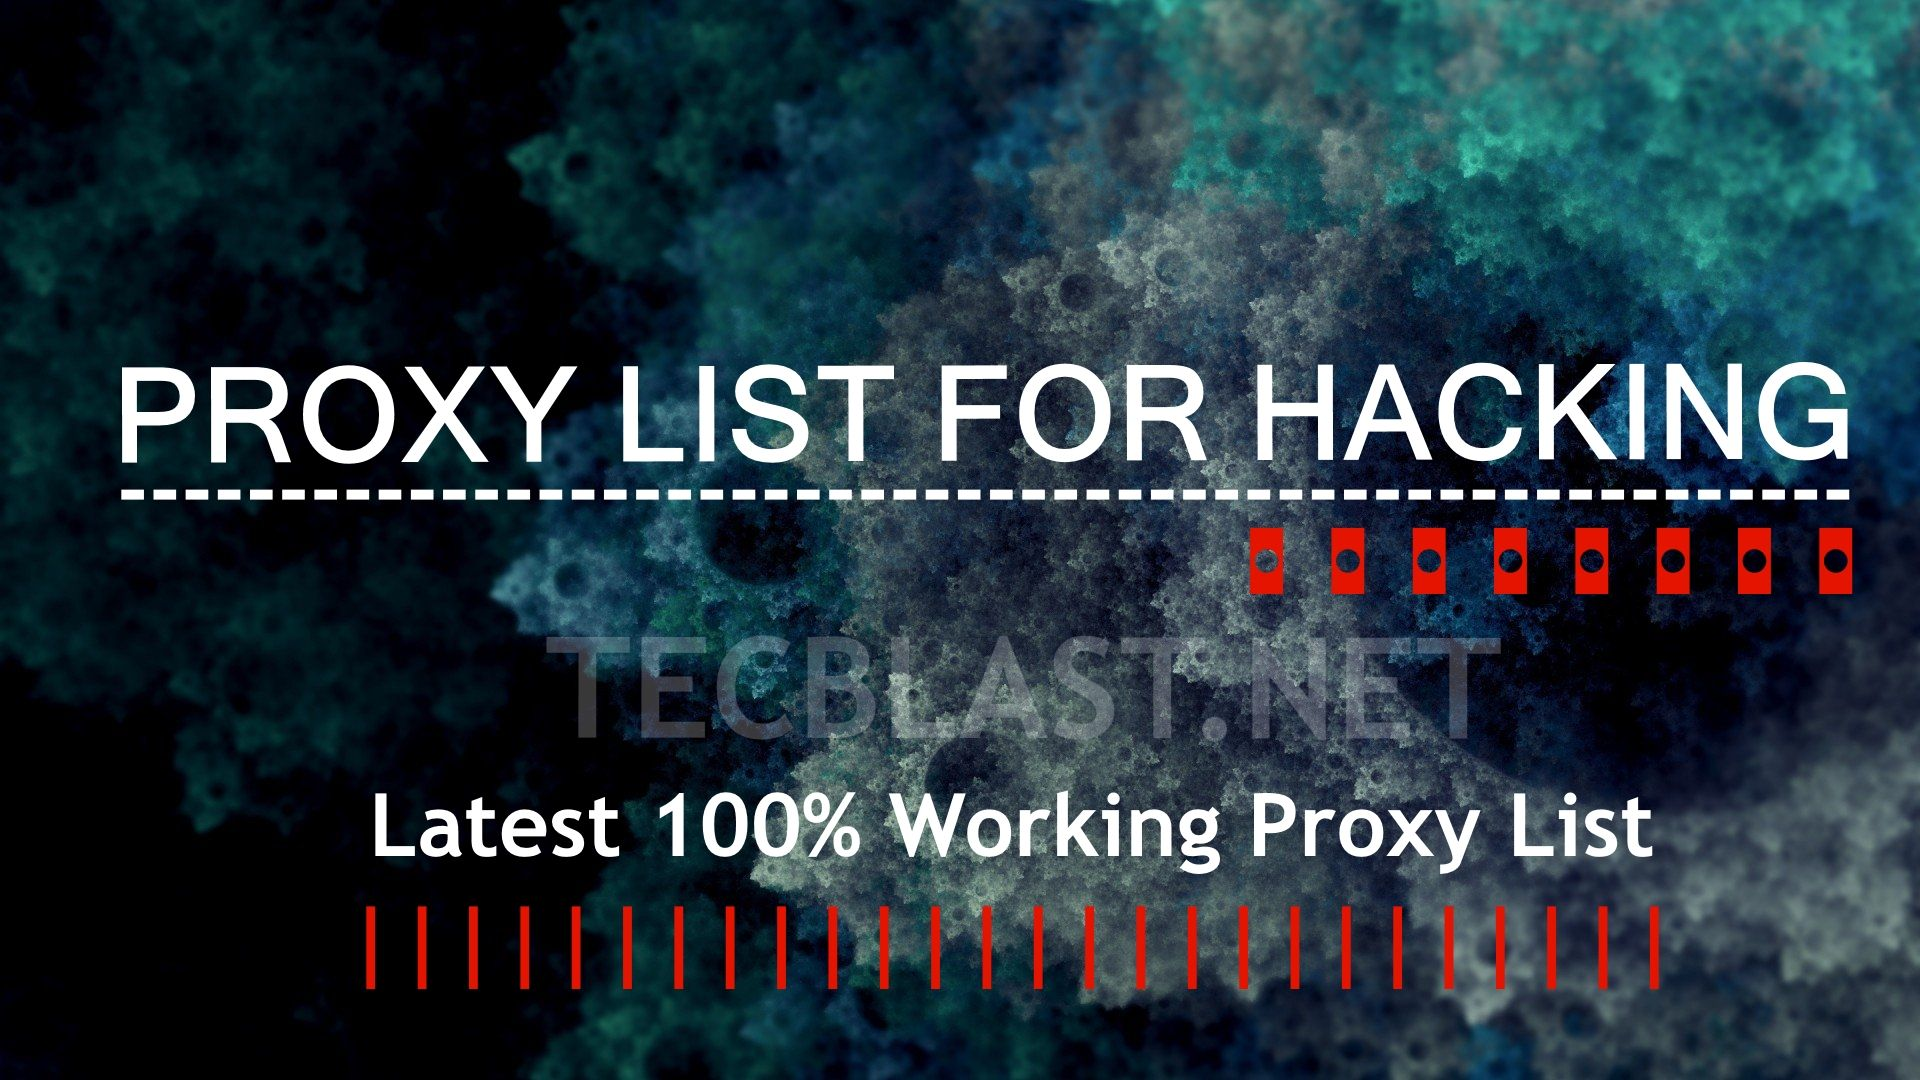 Proxy List 9 September 2016 (For 4g/3g) Latest Proxy for